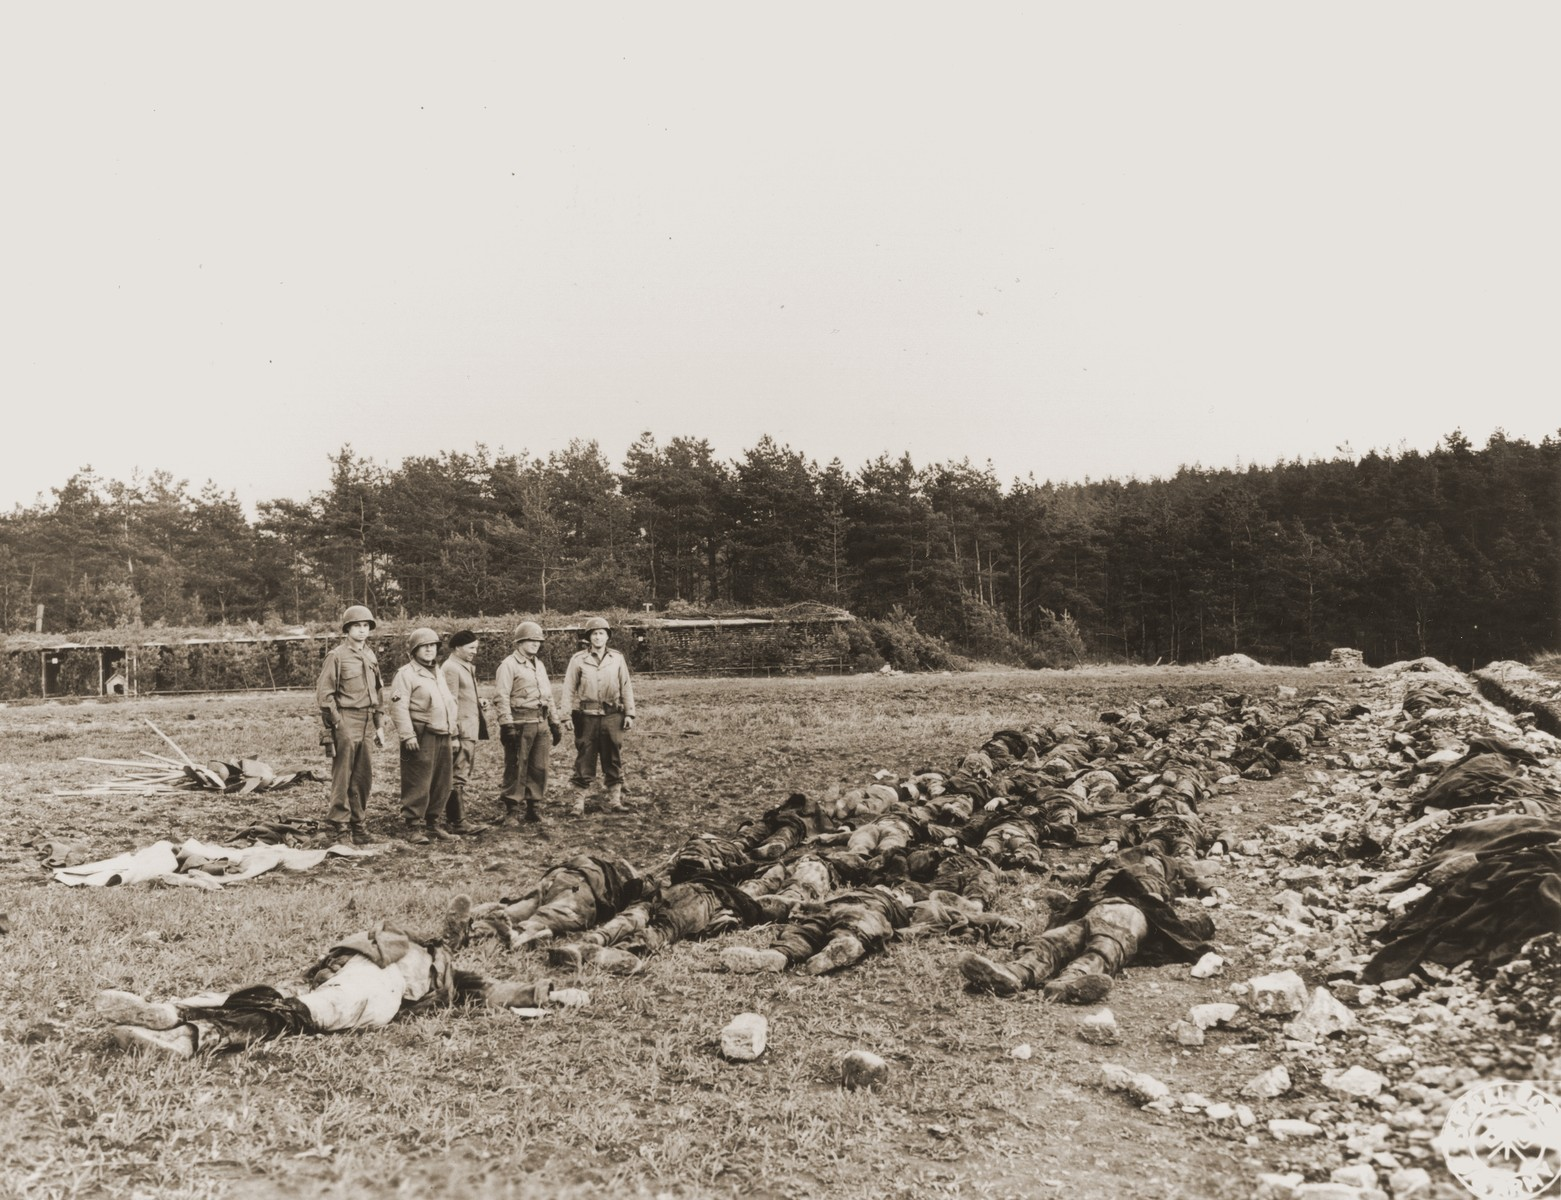 American soldiers view the corpses of slave laborers shot by the SS in the vicinity of Hirzenhain.